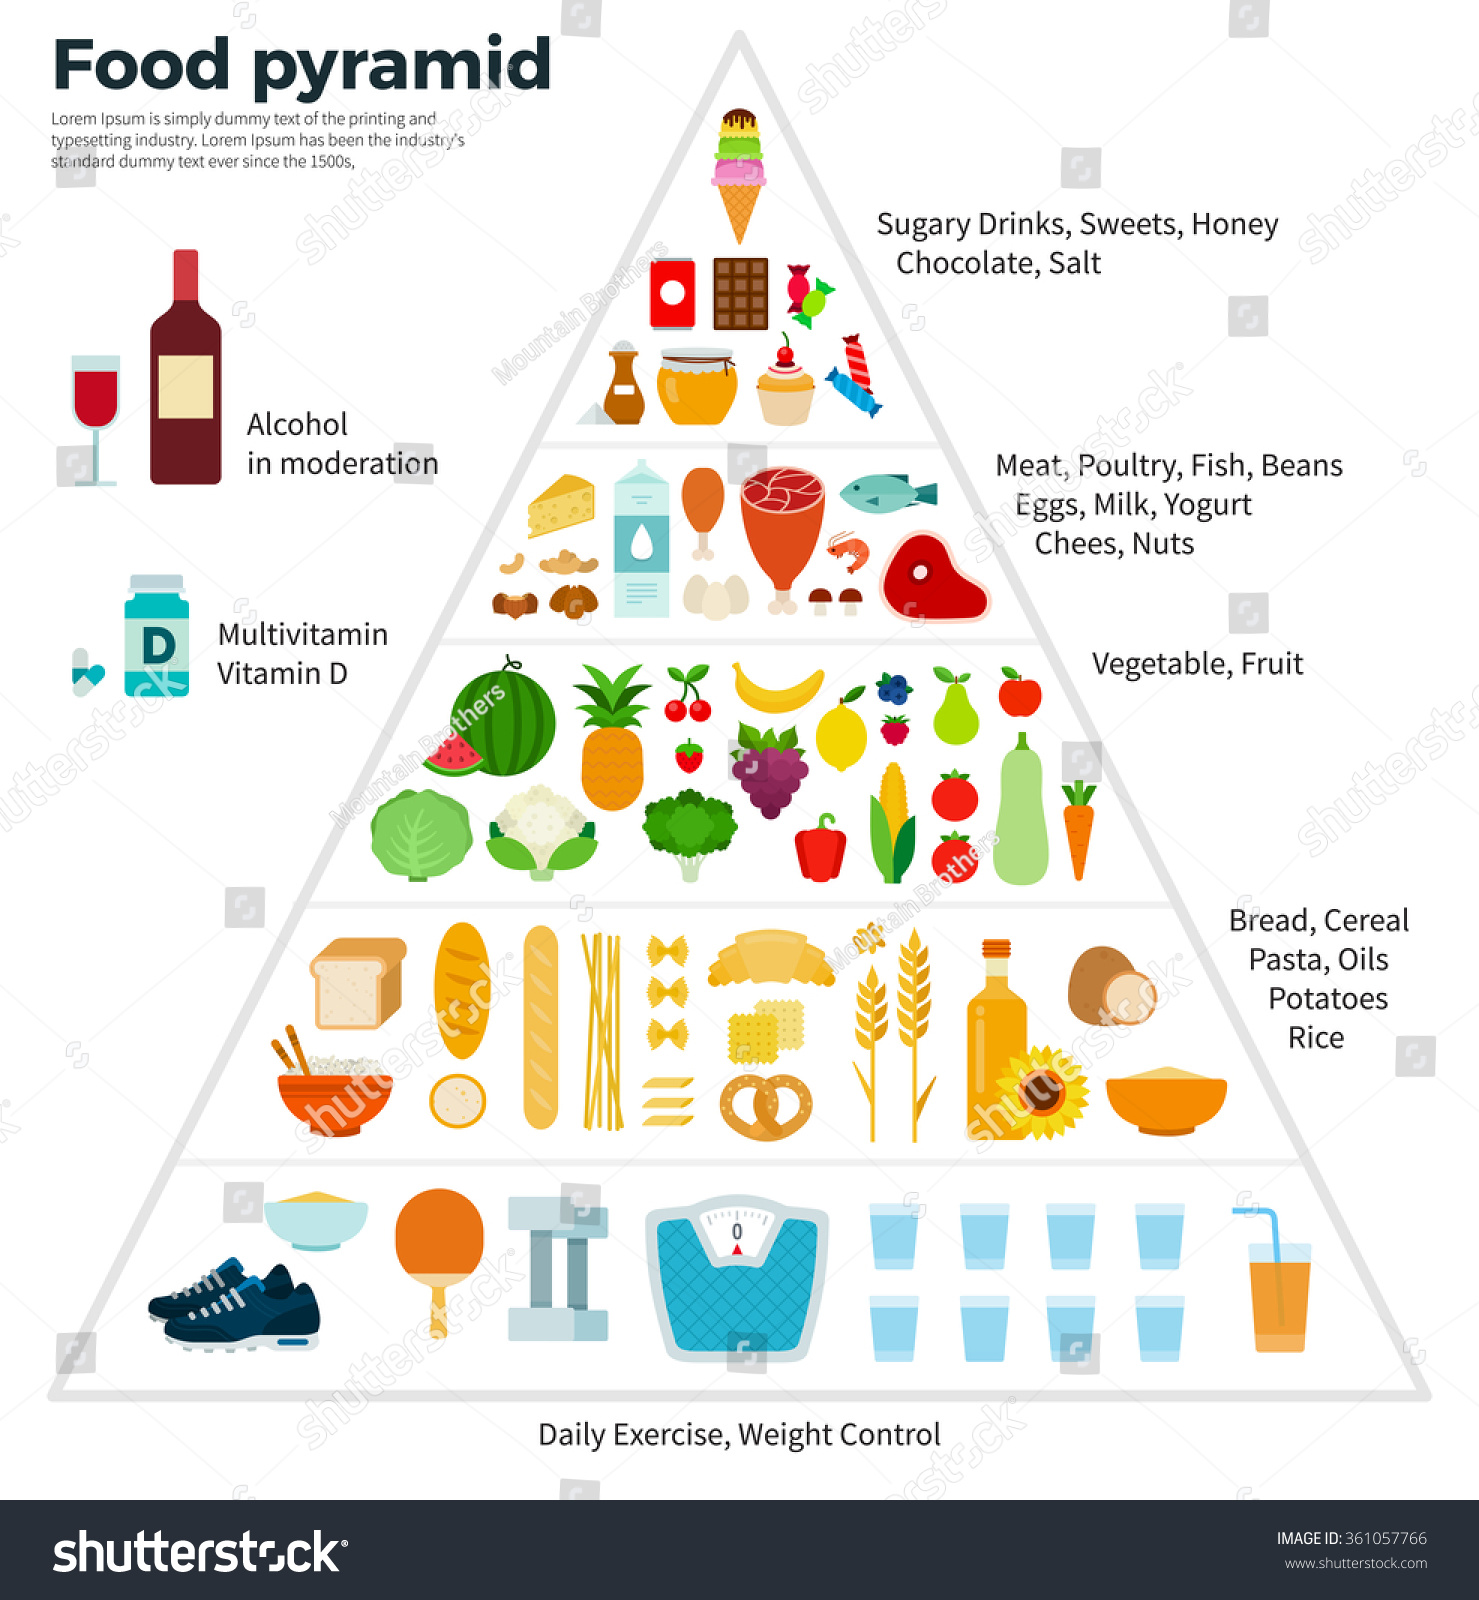 Healthy Eating Concept Food Guide Pyramid Of Vegetables